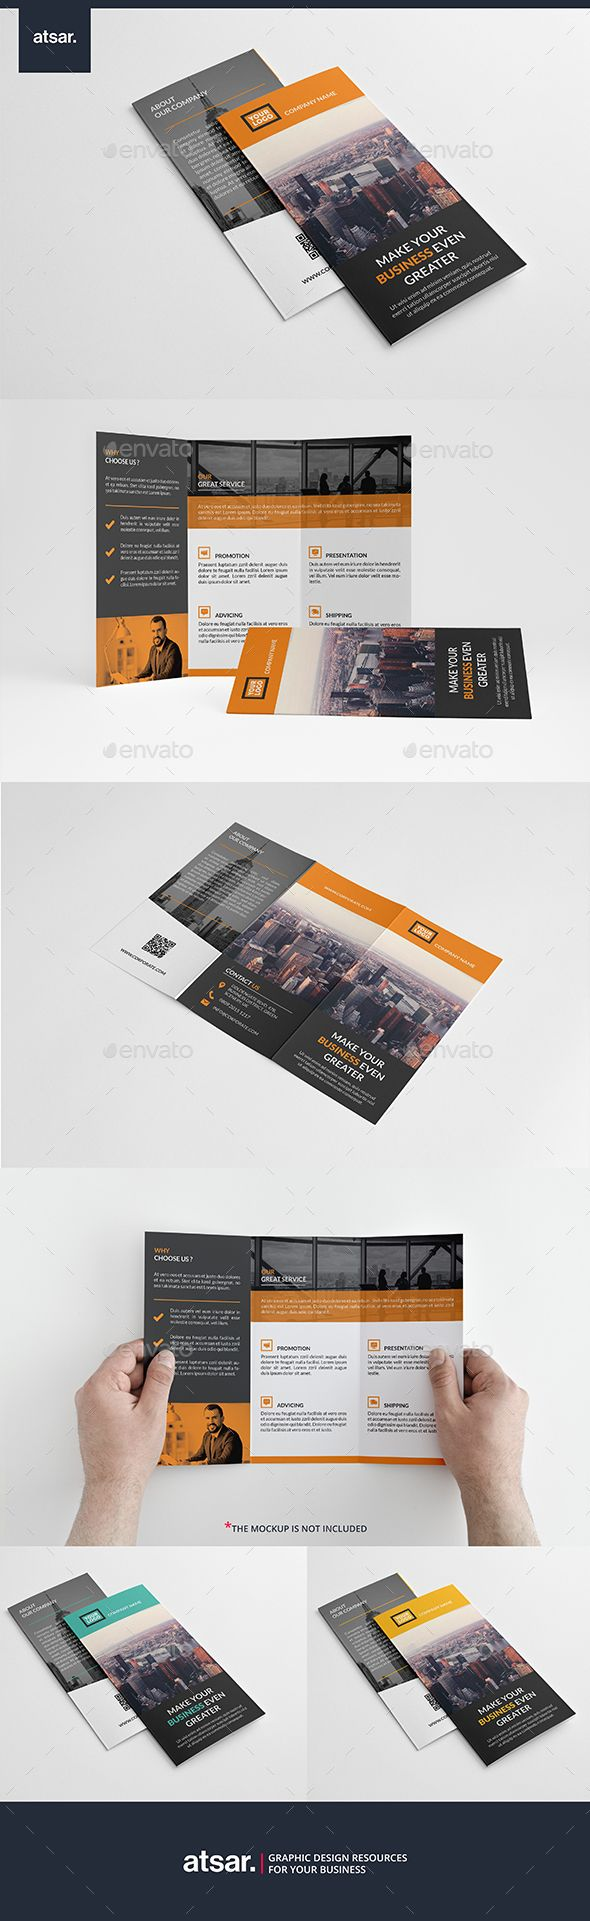 Simple Corporate Trifold Brochure Template PSD #design Download: http://graphicriver.net/item/simple-corporate-trifold/13955642?ref=ksioks